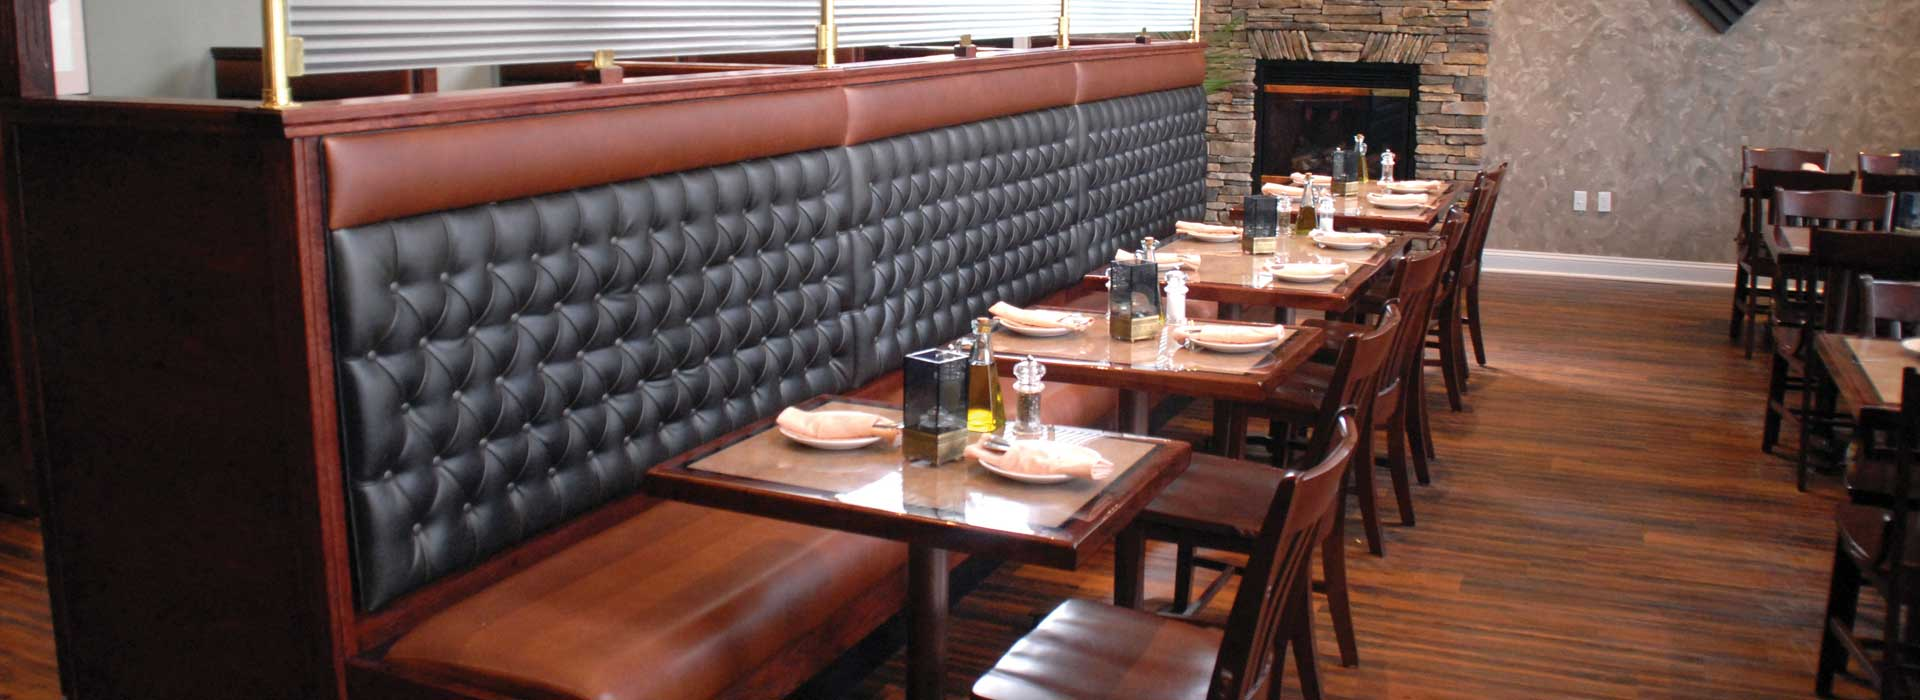 Reastaurant Tables New England Seating Restaurant Booths The Best In Restaurant